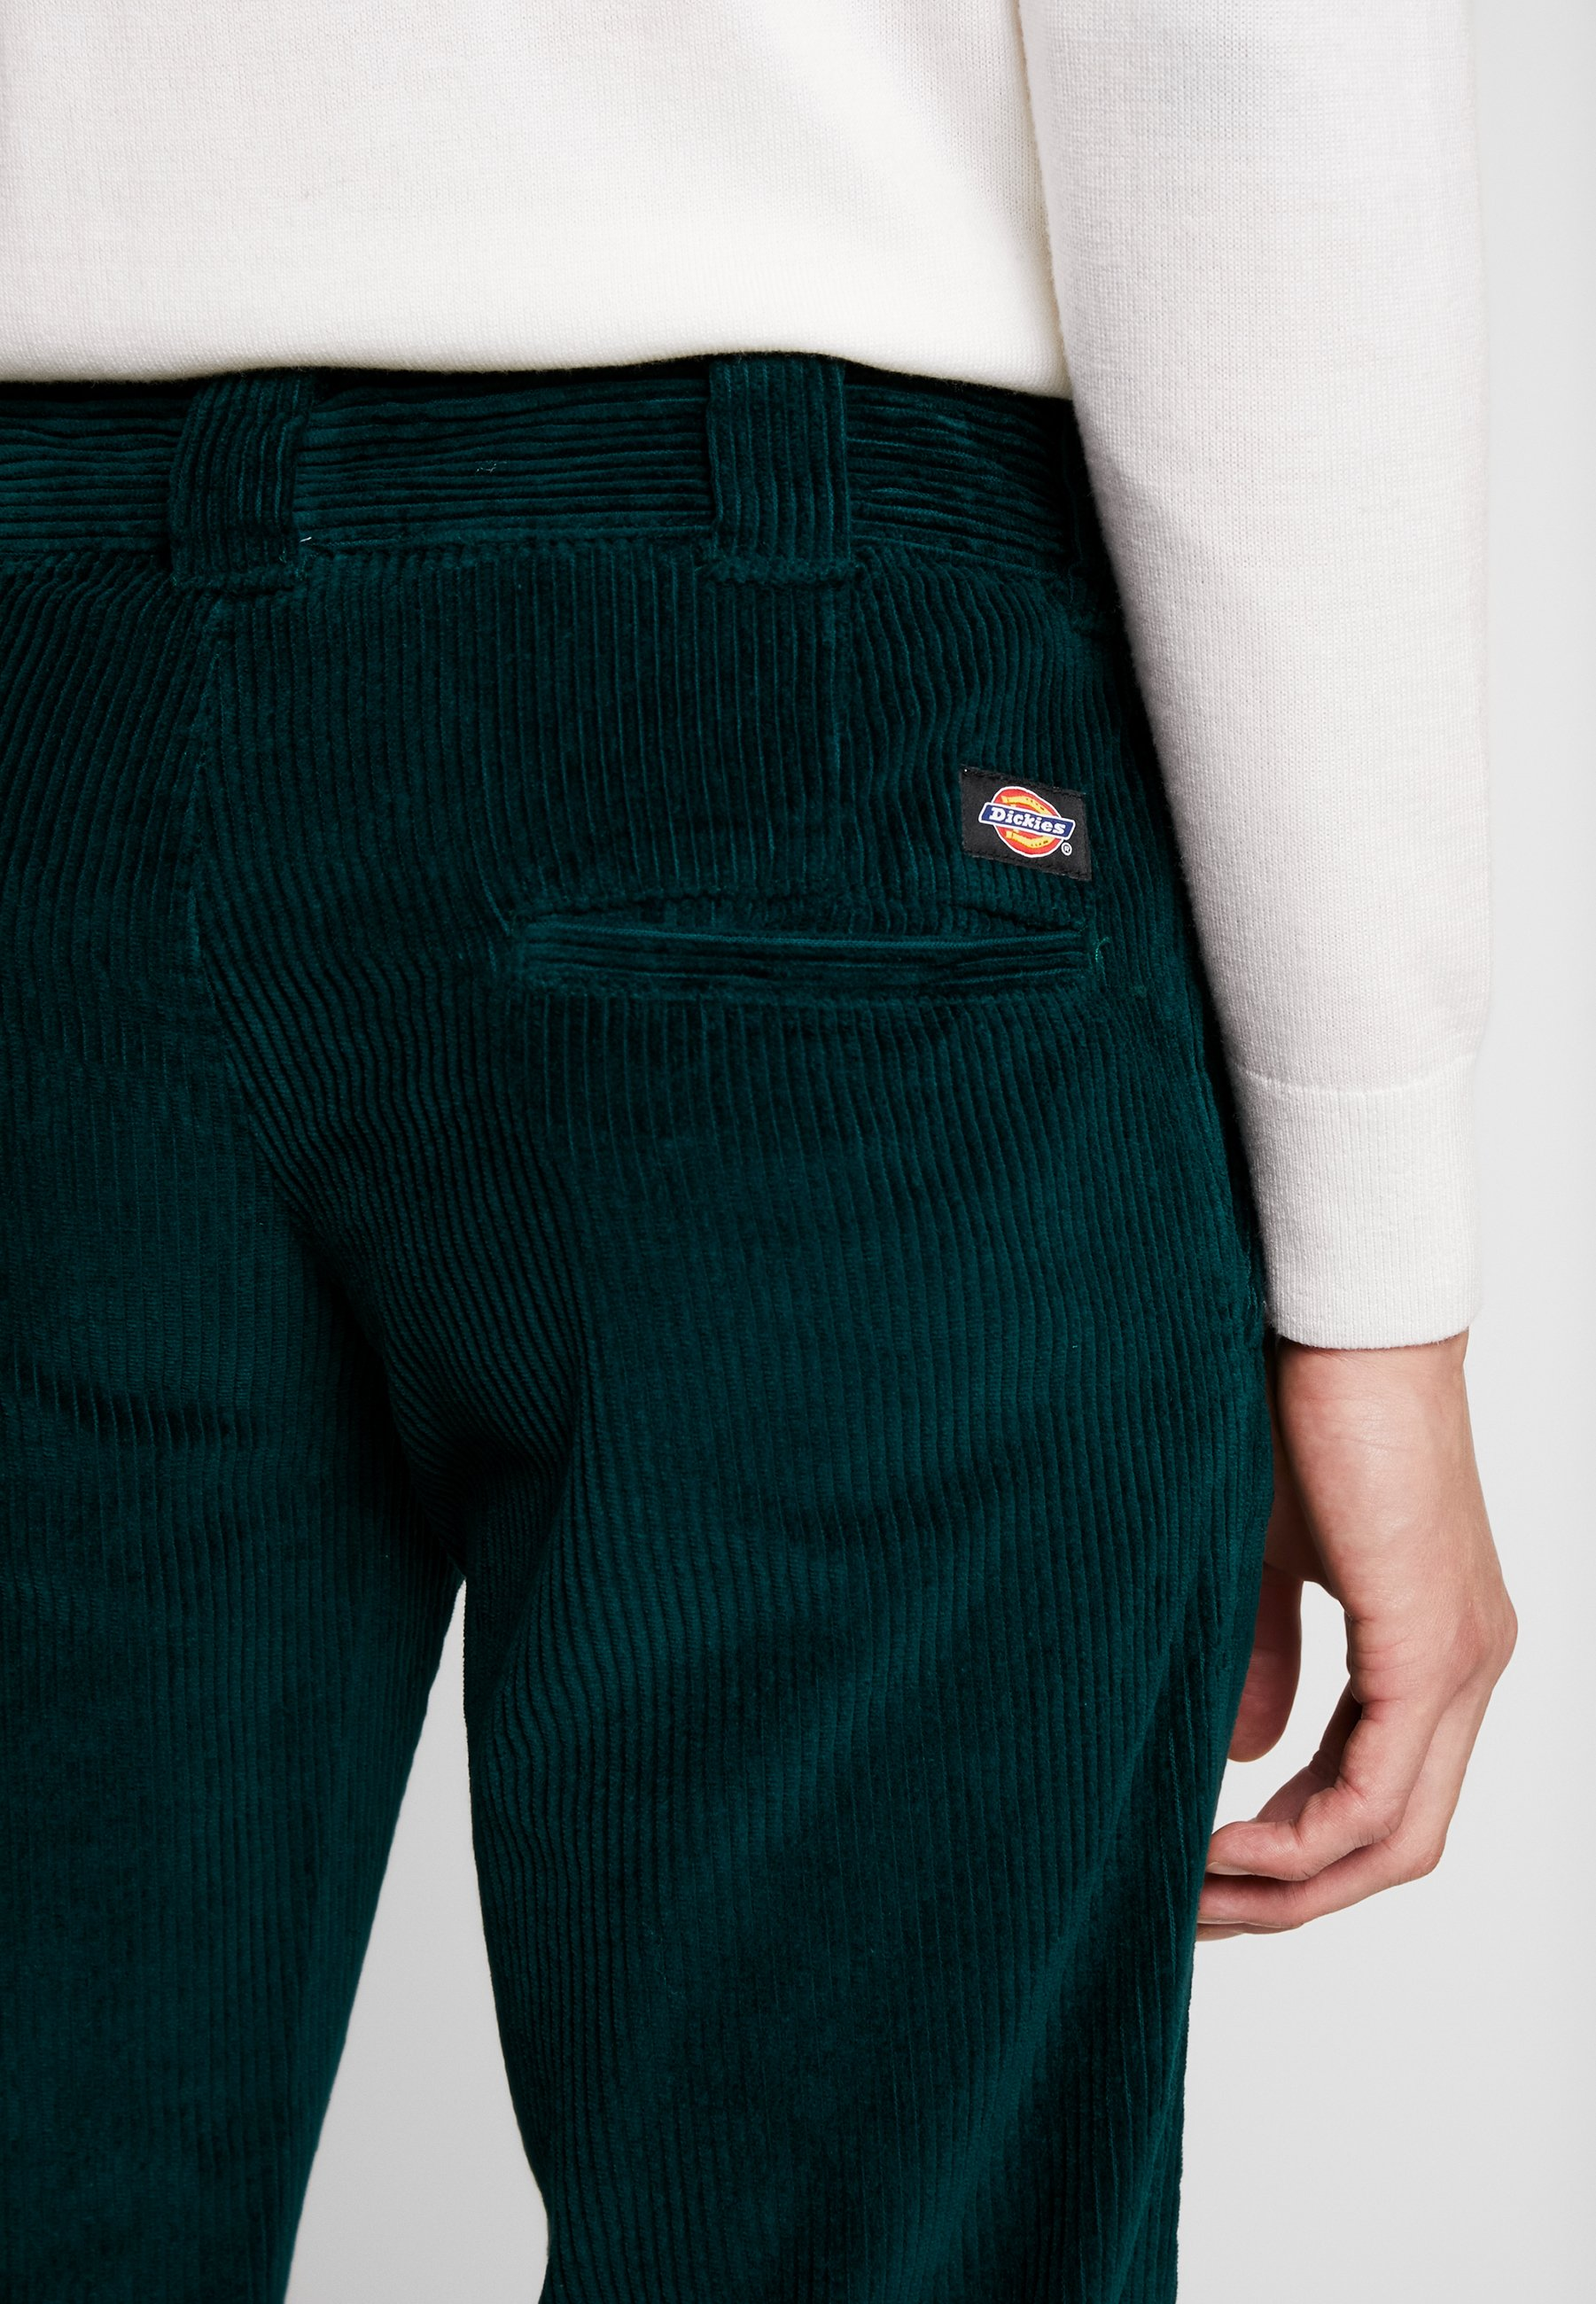 CloverportChino Dickies Forest Dickies Dickies CloverportChino Forest Forest Dickies Dickies CloverportChino Forest CloverportChino CloverportChino Forest Nm0Owvn8